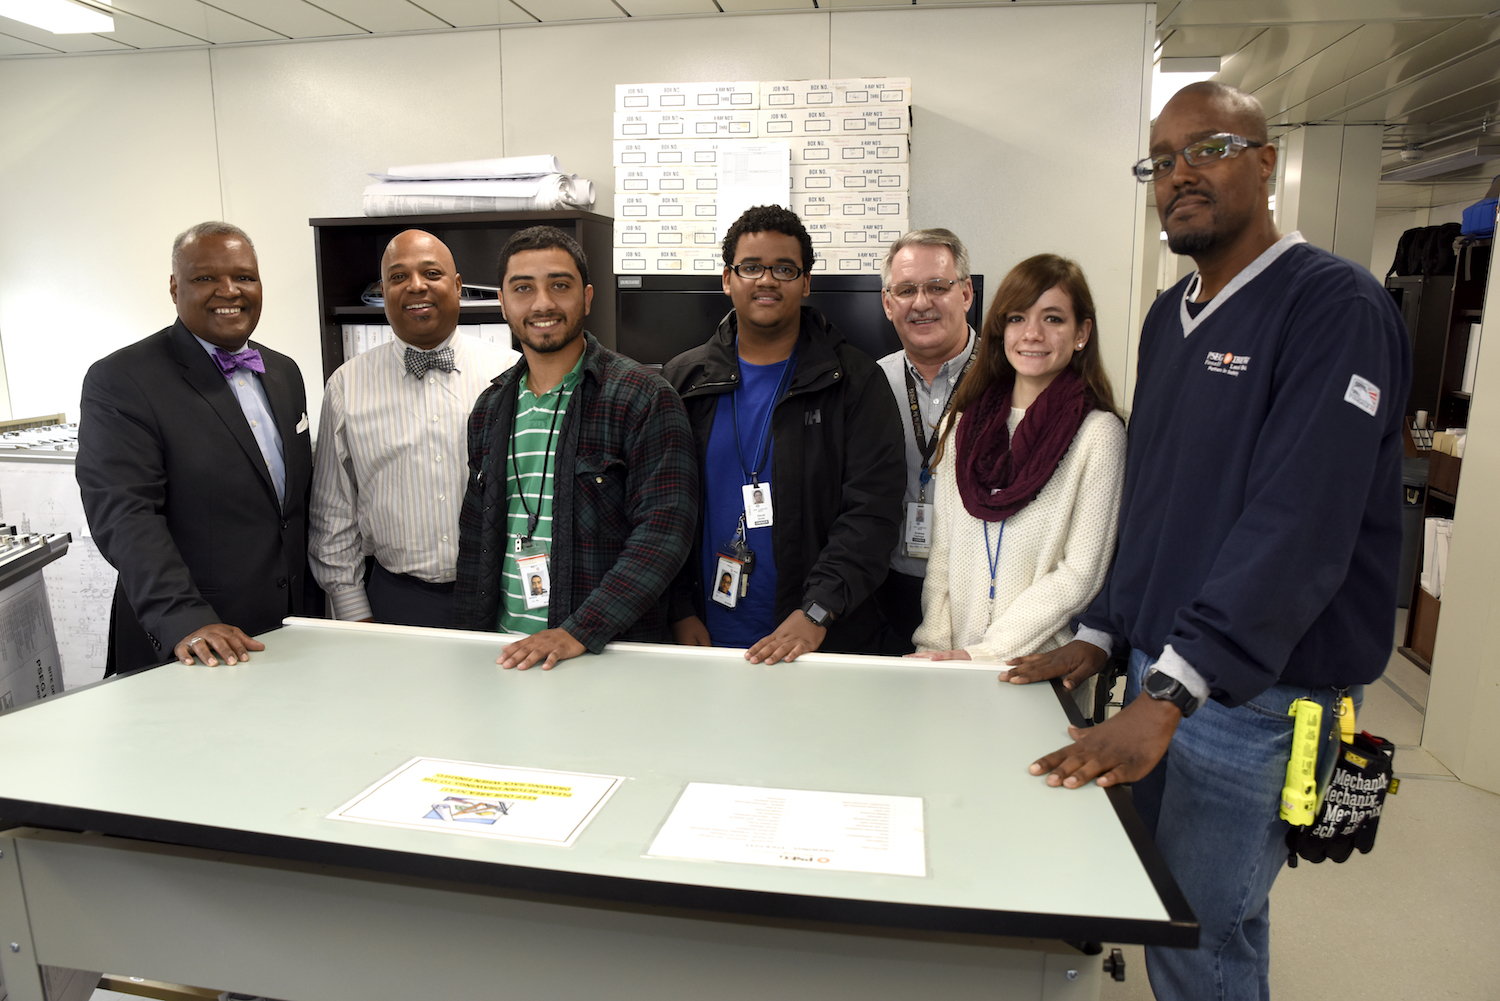 Prince George's County Executive Rushern Baker Meets With Students From The PSEG Keys Energy Program